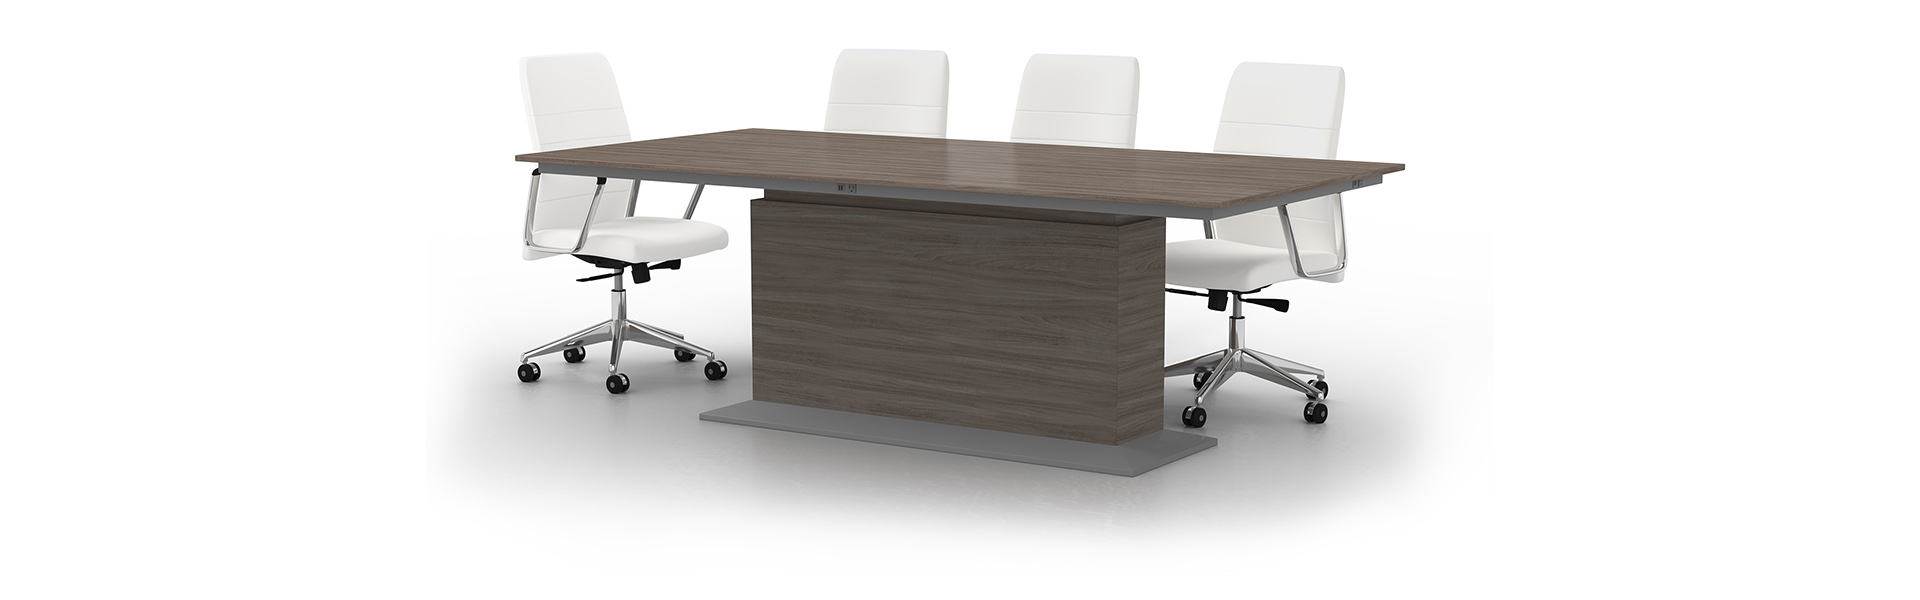 Lugano Enwork - Conference room table height